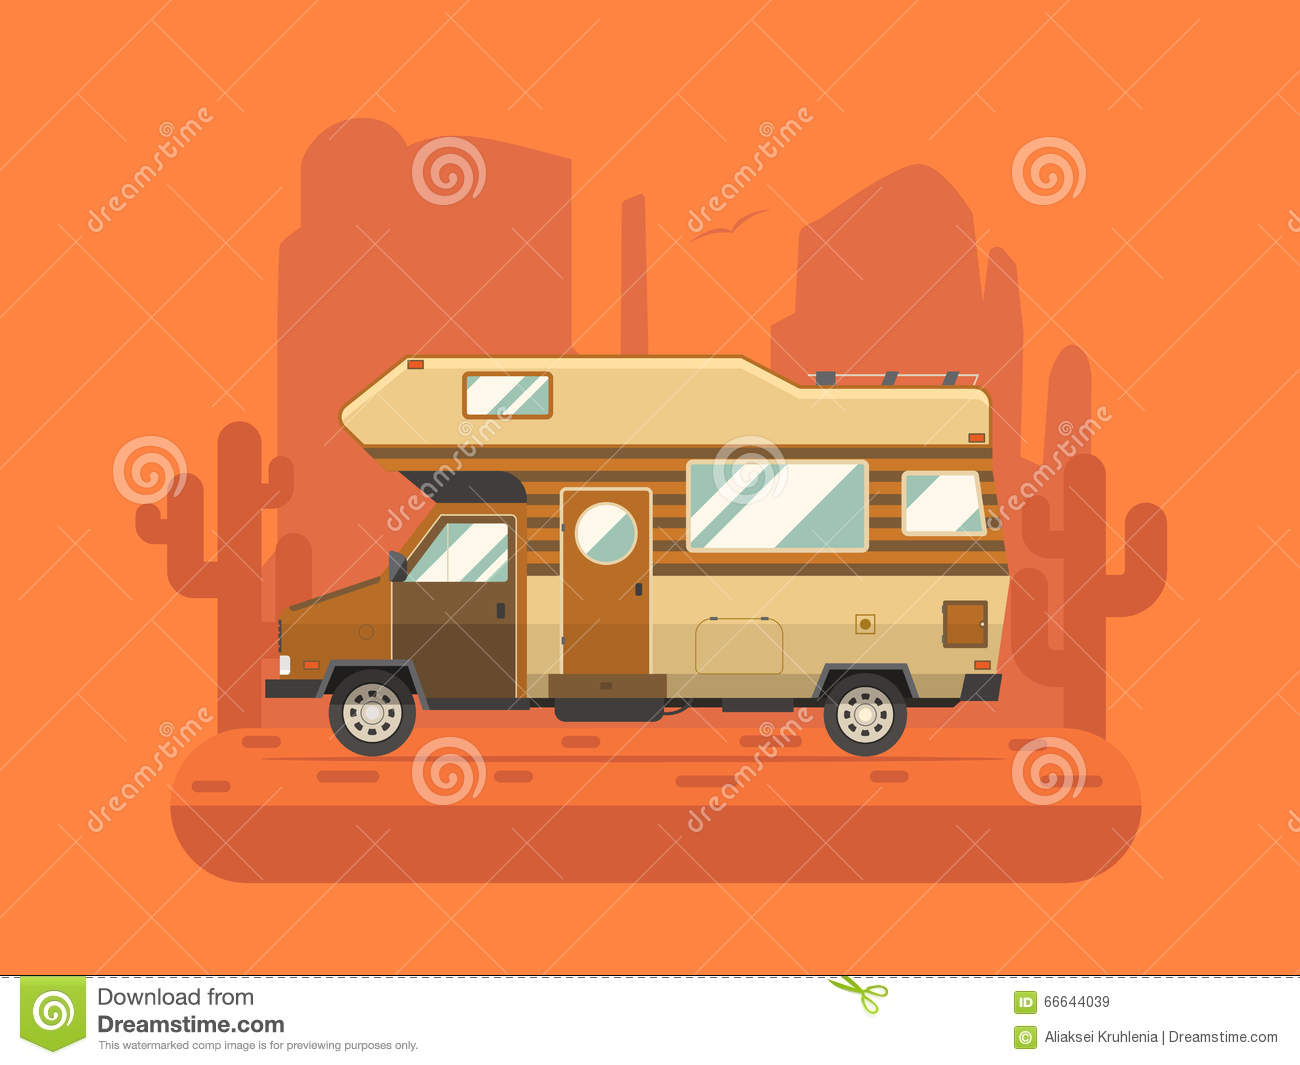 Best Place To Buy A Travel Trailer